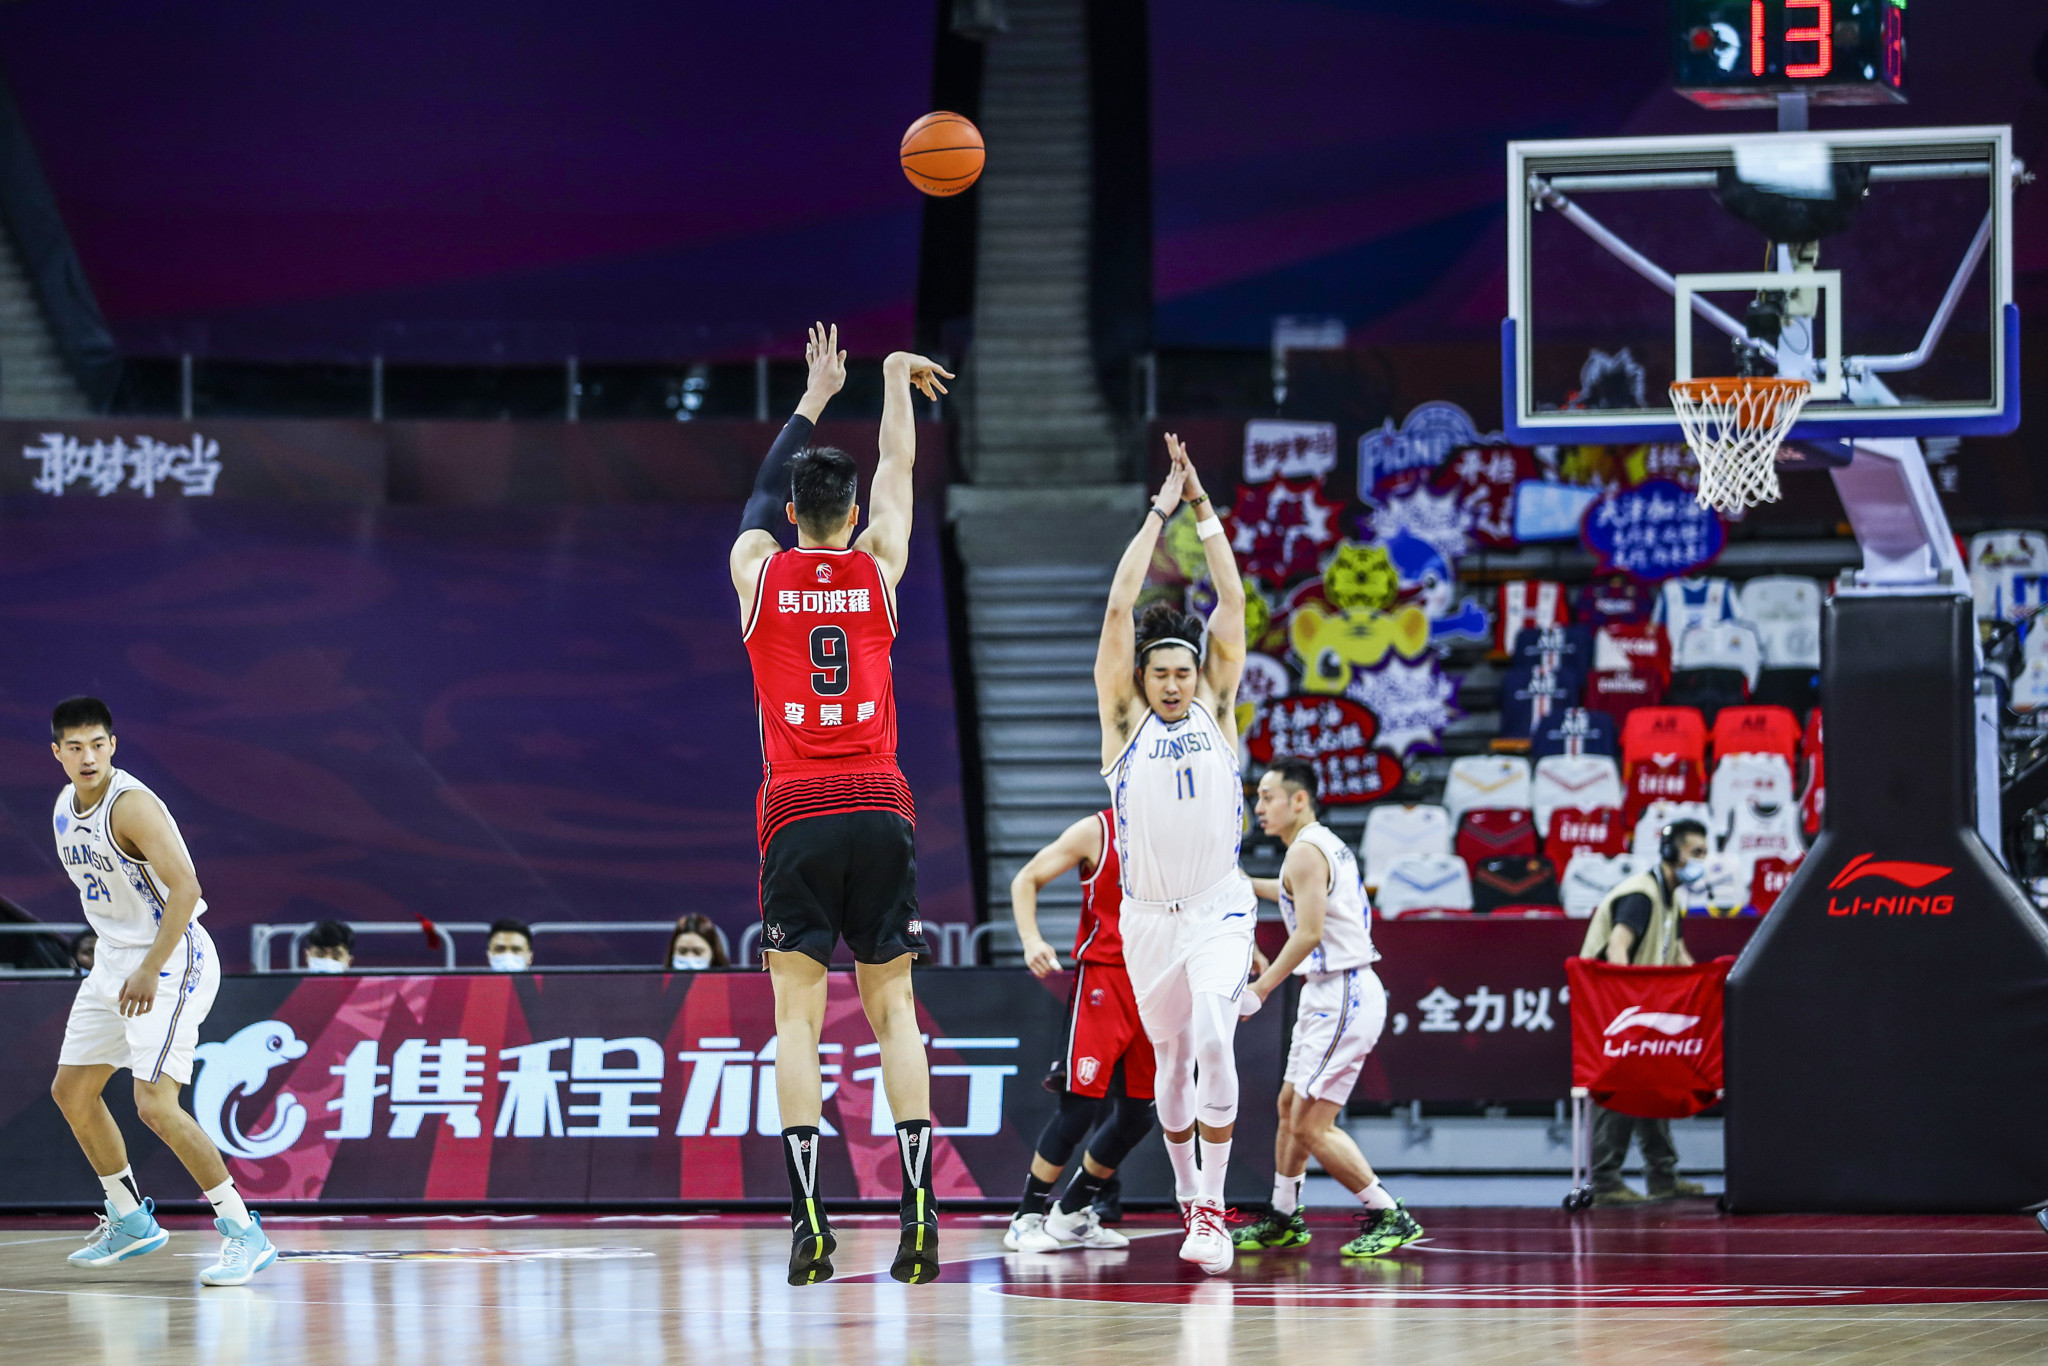 Chinese Basketball Association chief Wang resigns from role